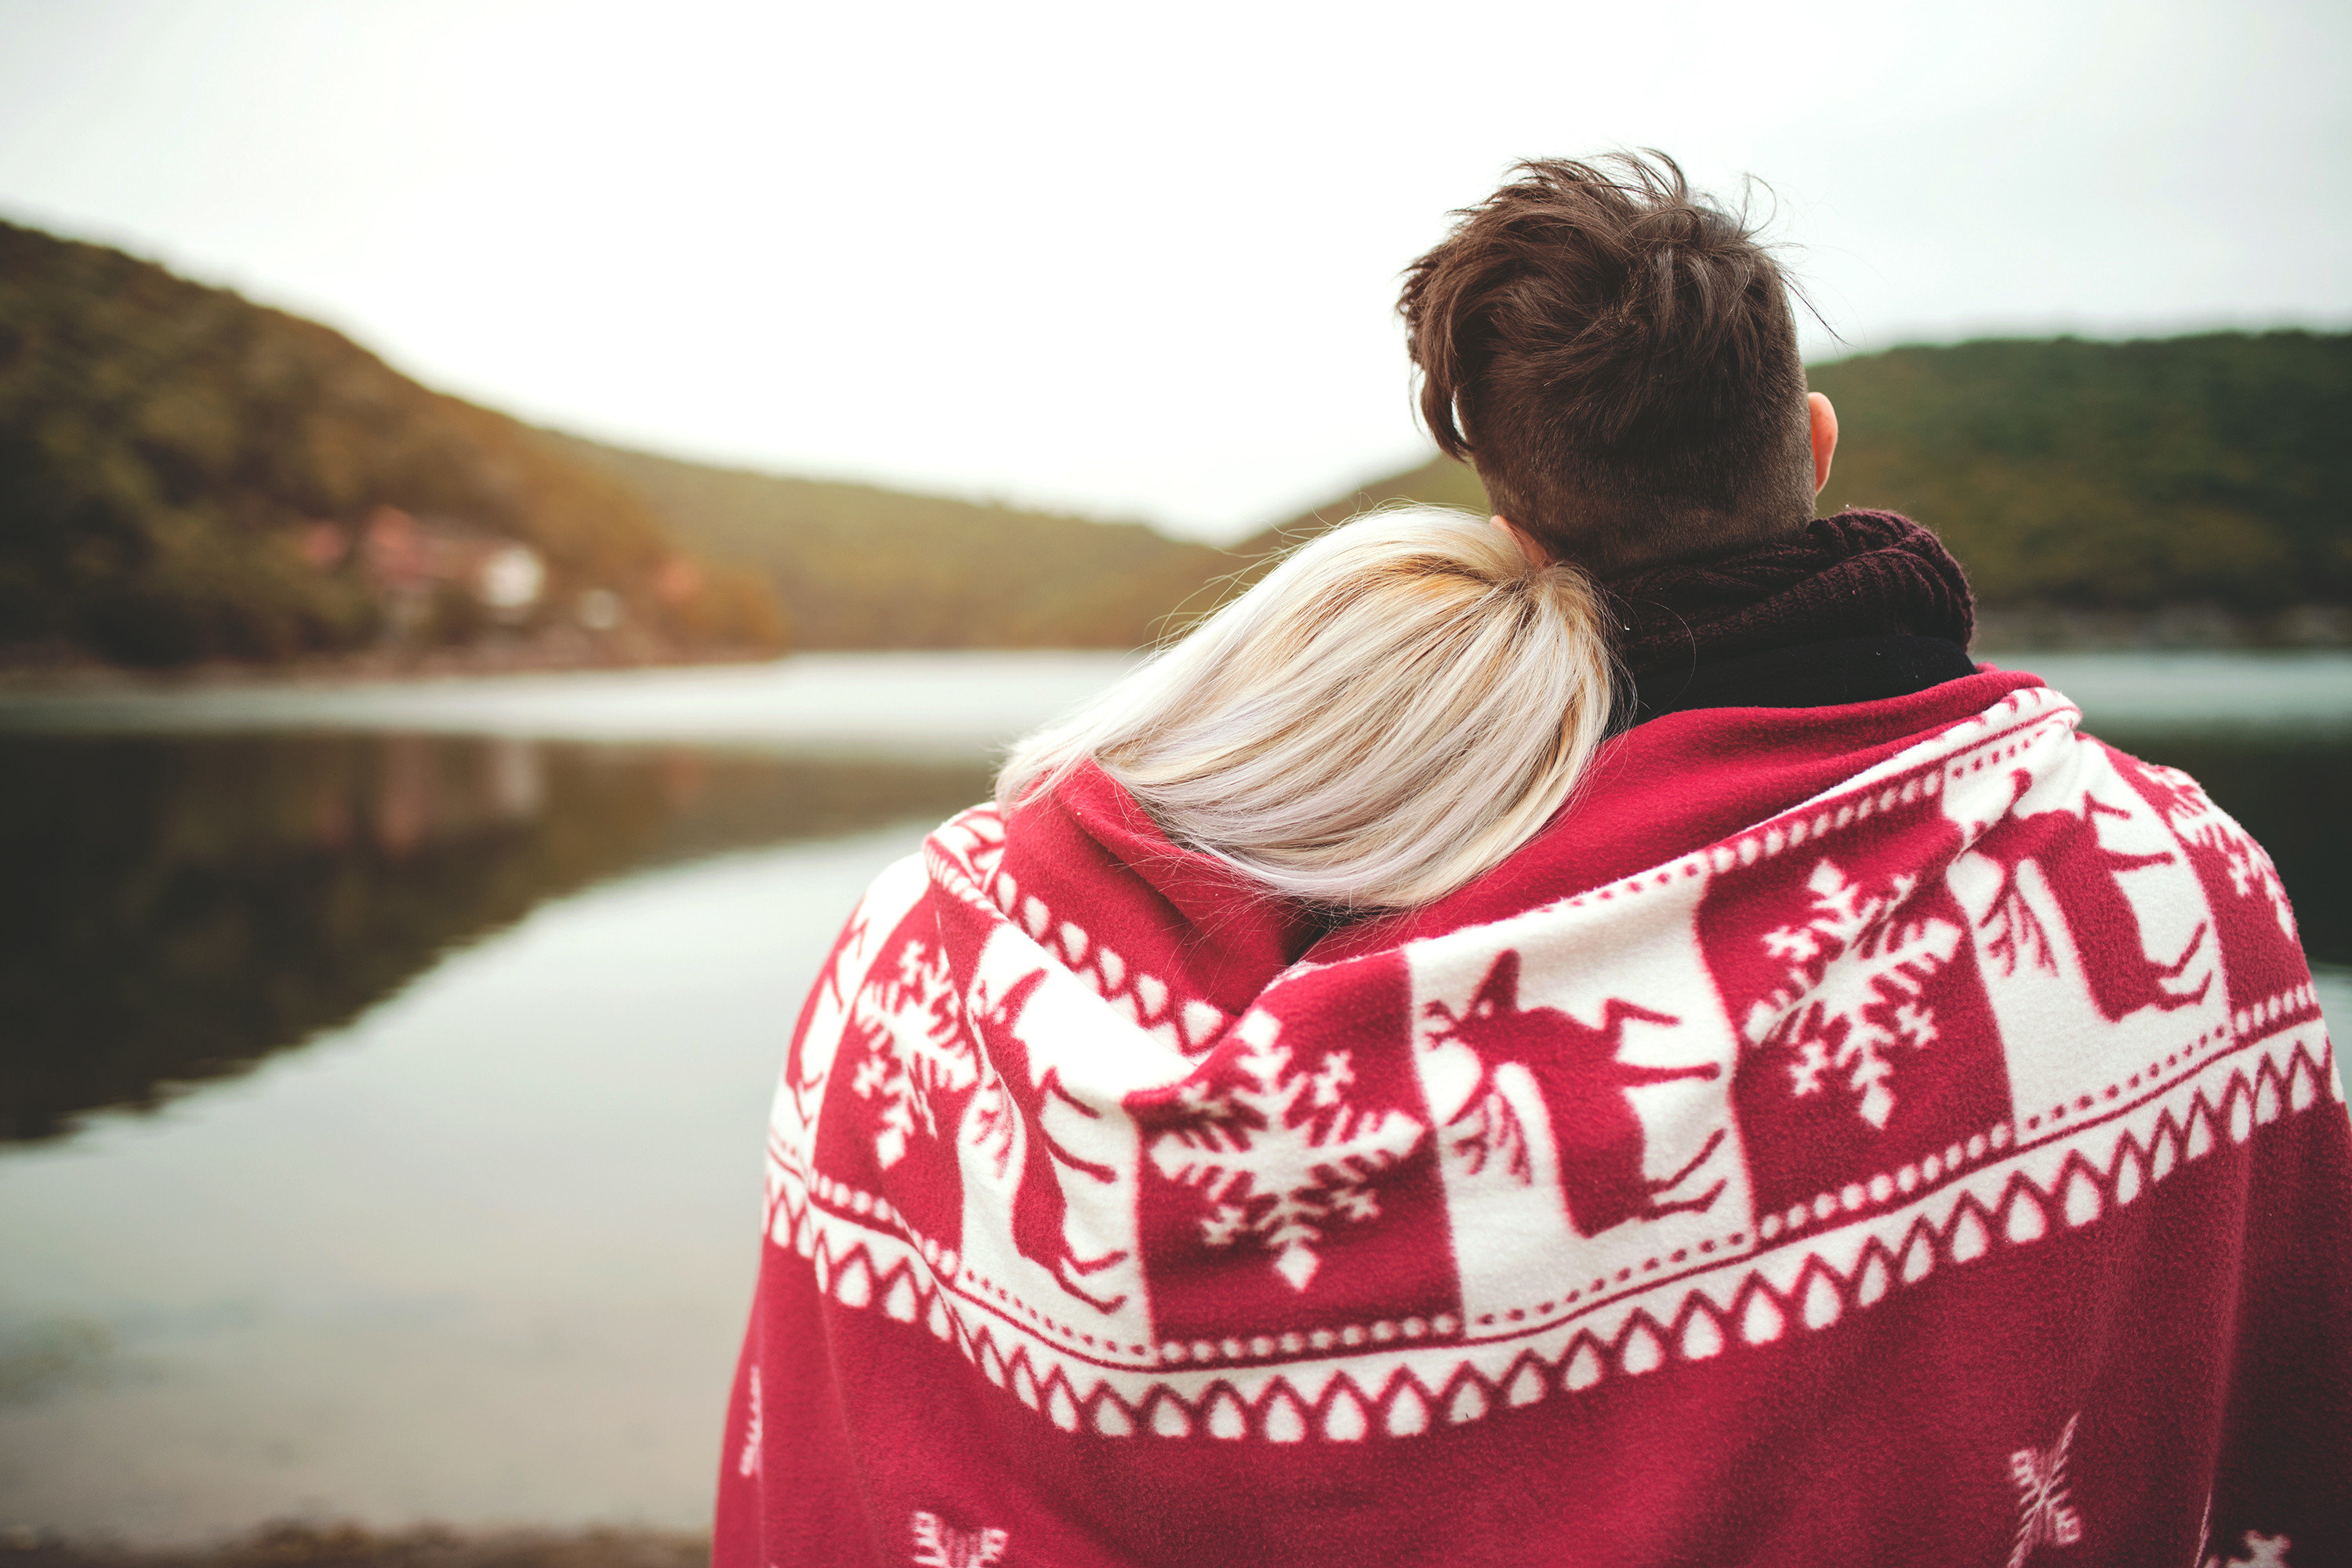 couple Gift Guides Romance Travel Shop person red outdoor girl photography fun outerwear love vacation smile water